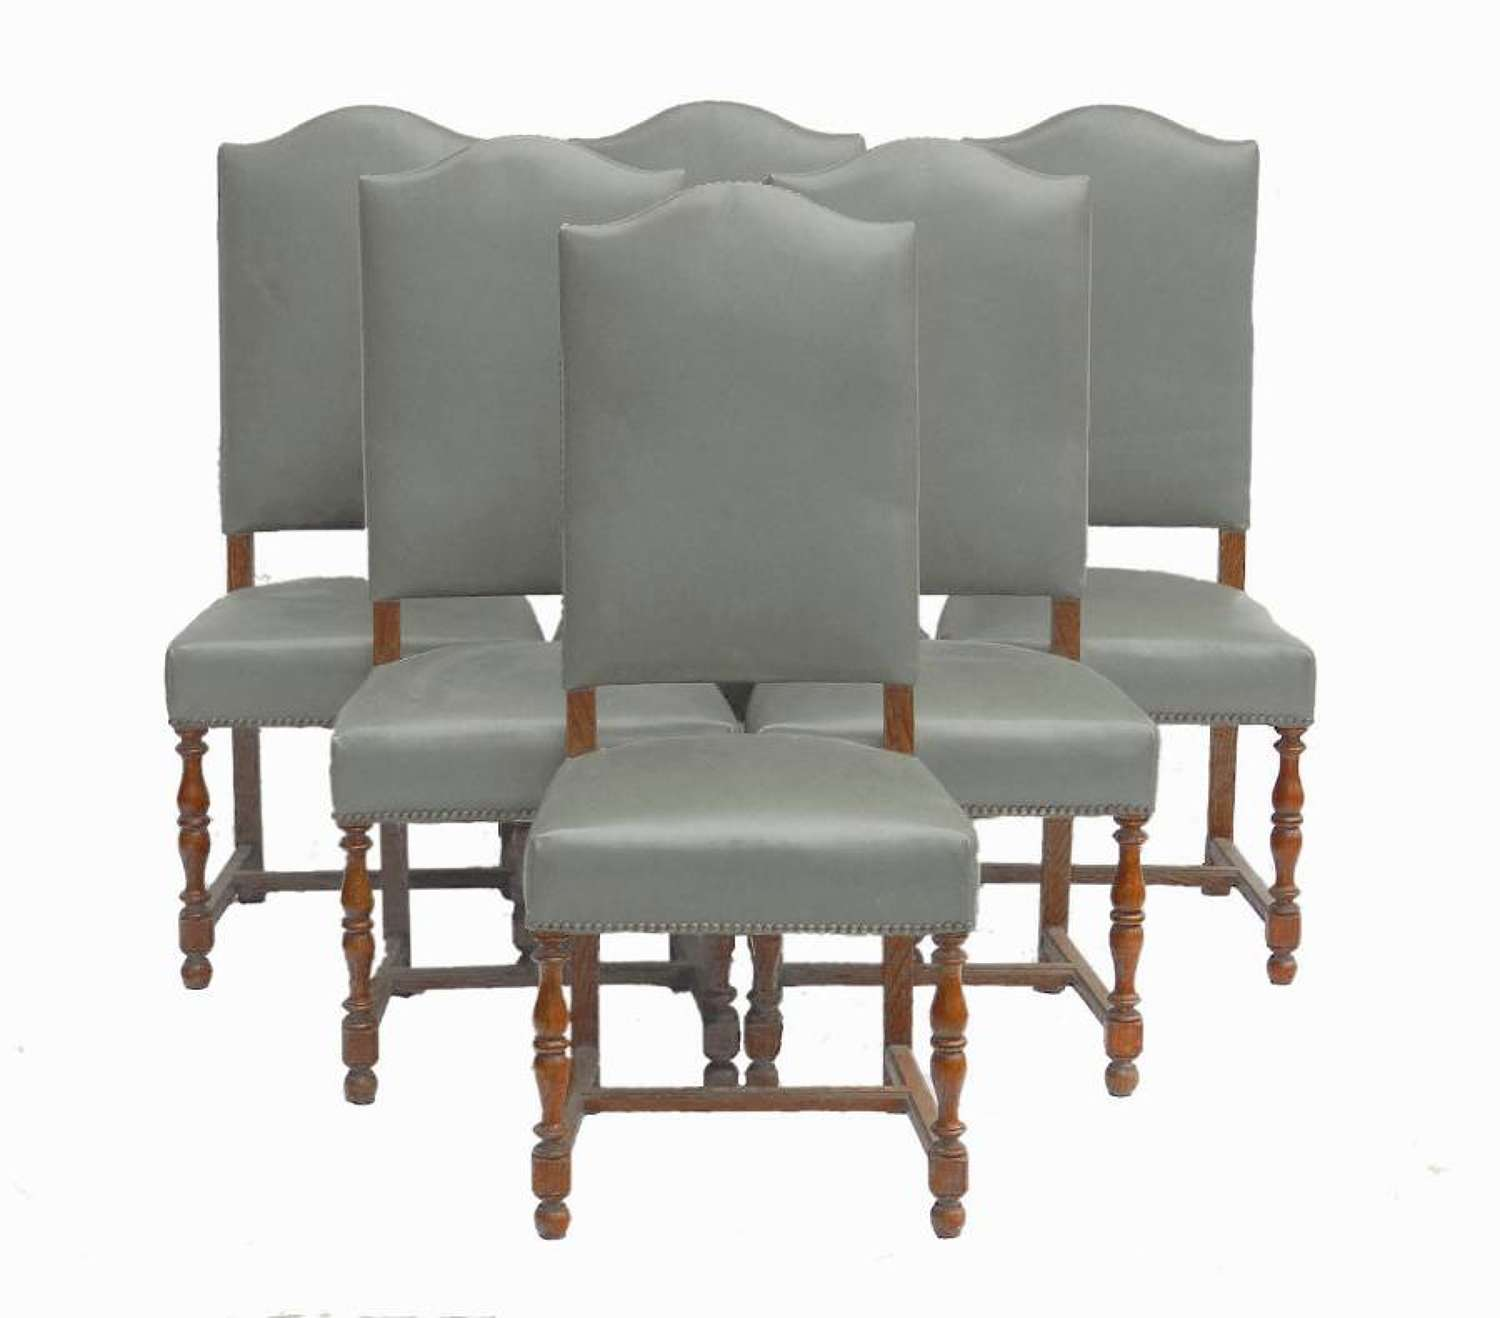 Six Dining Chairs includes recovering French early 20th century